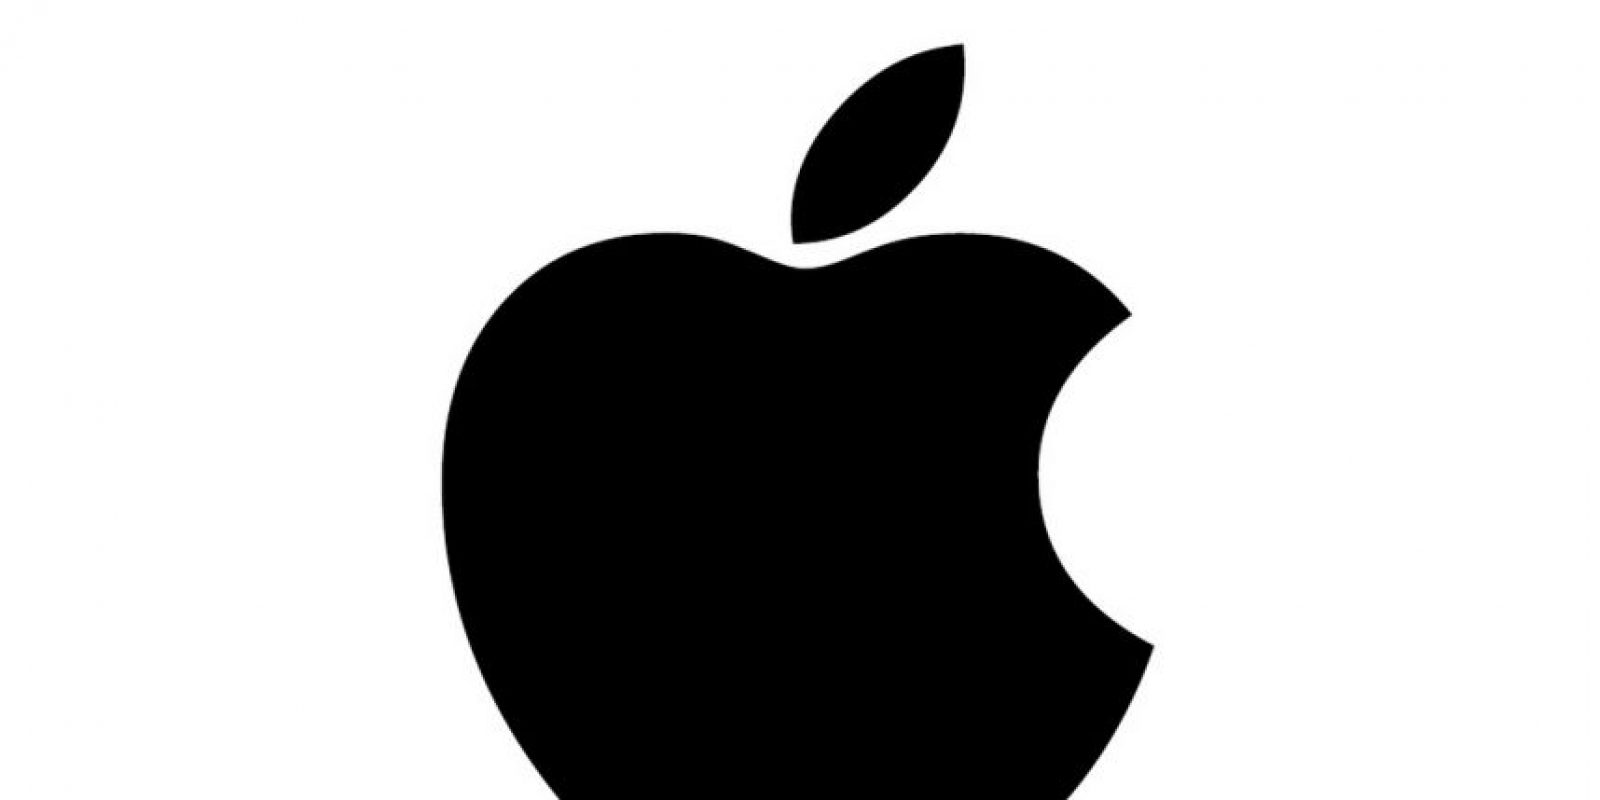 Apple cinco estrellas Foto: Apple